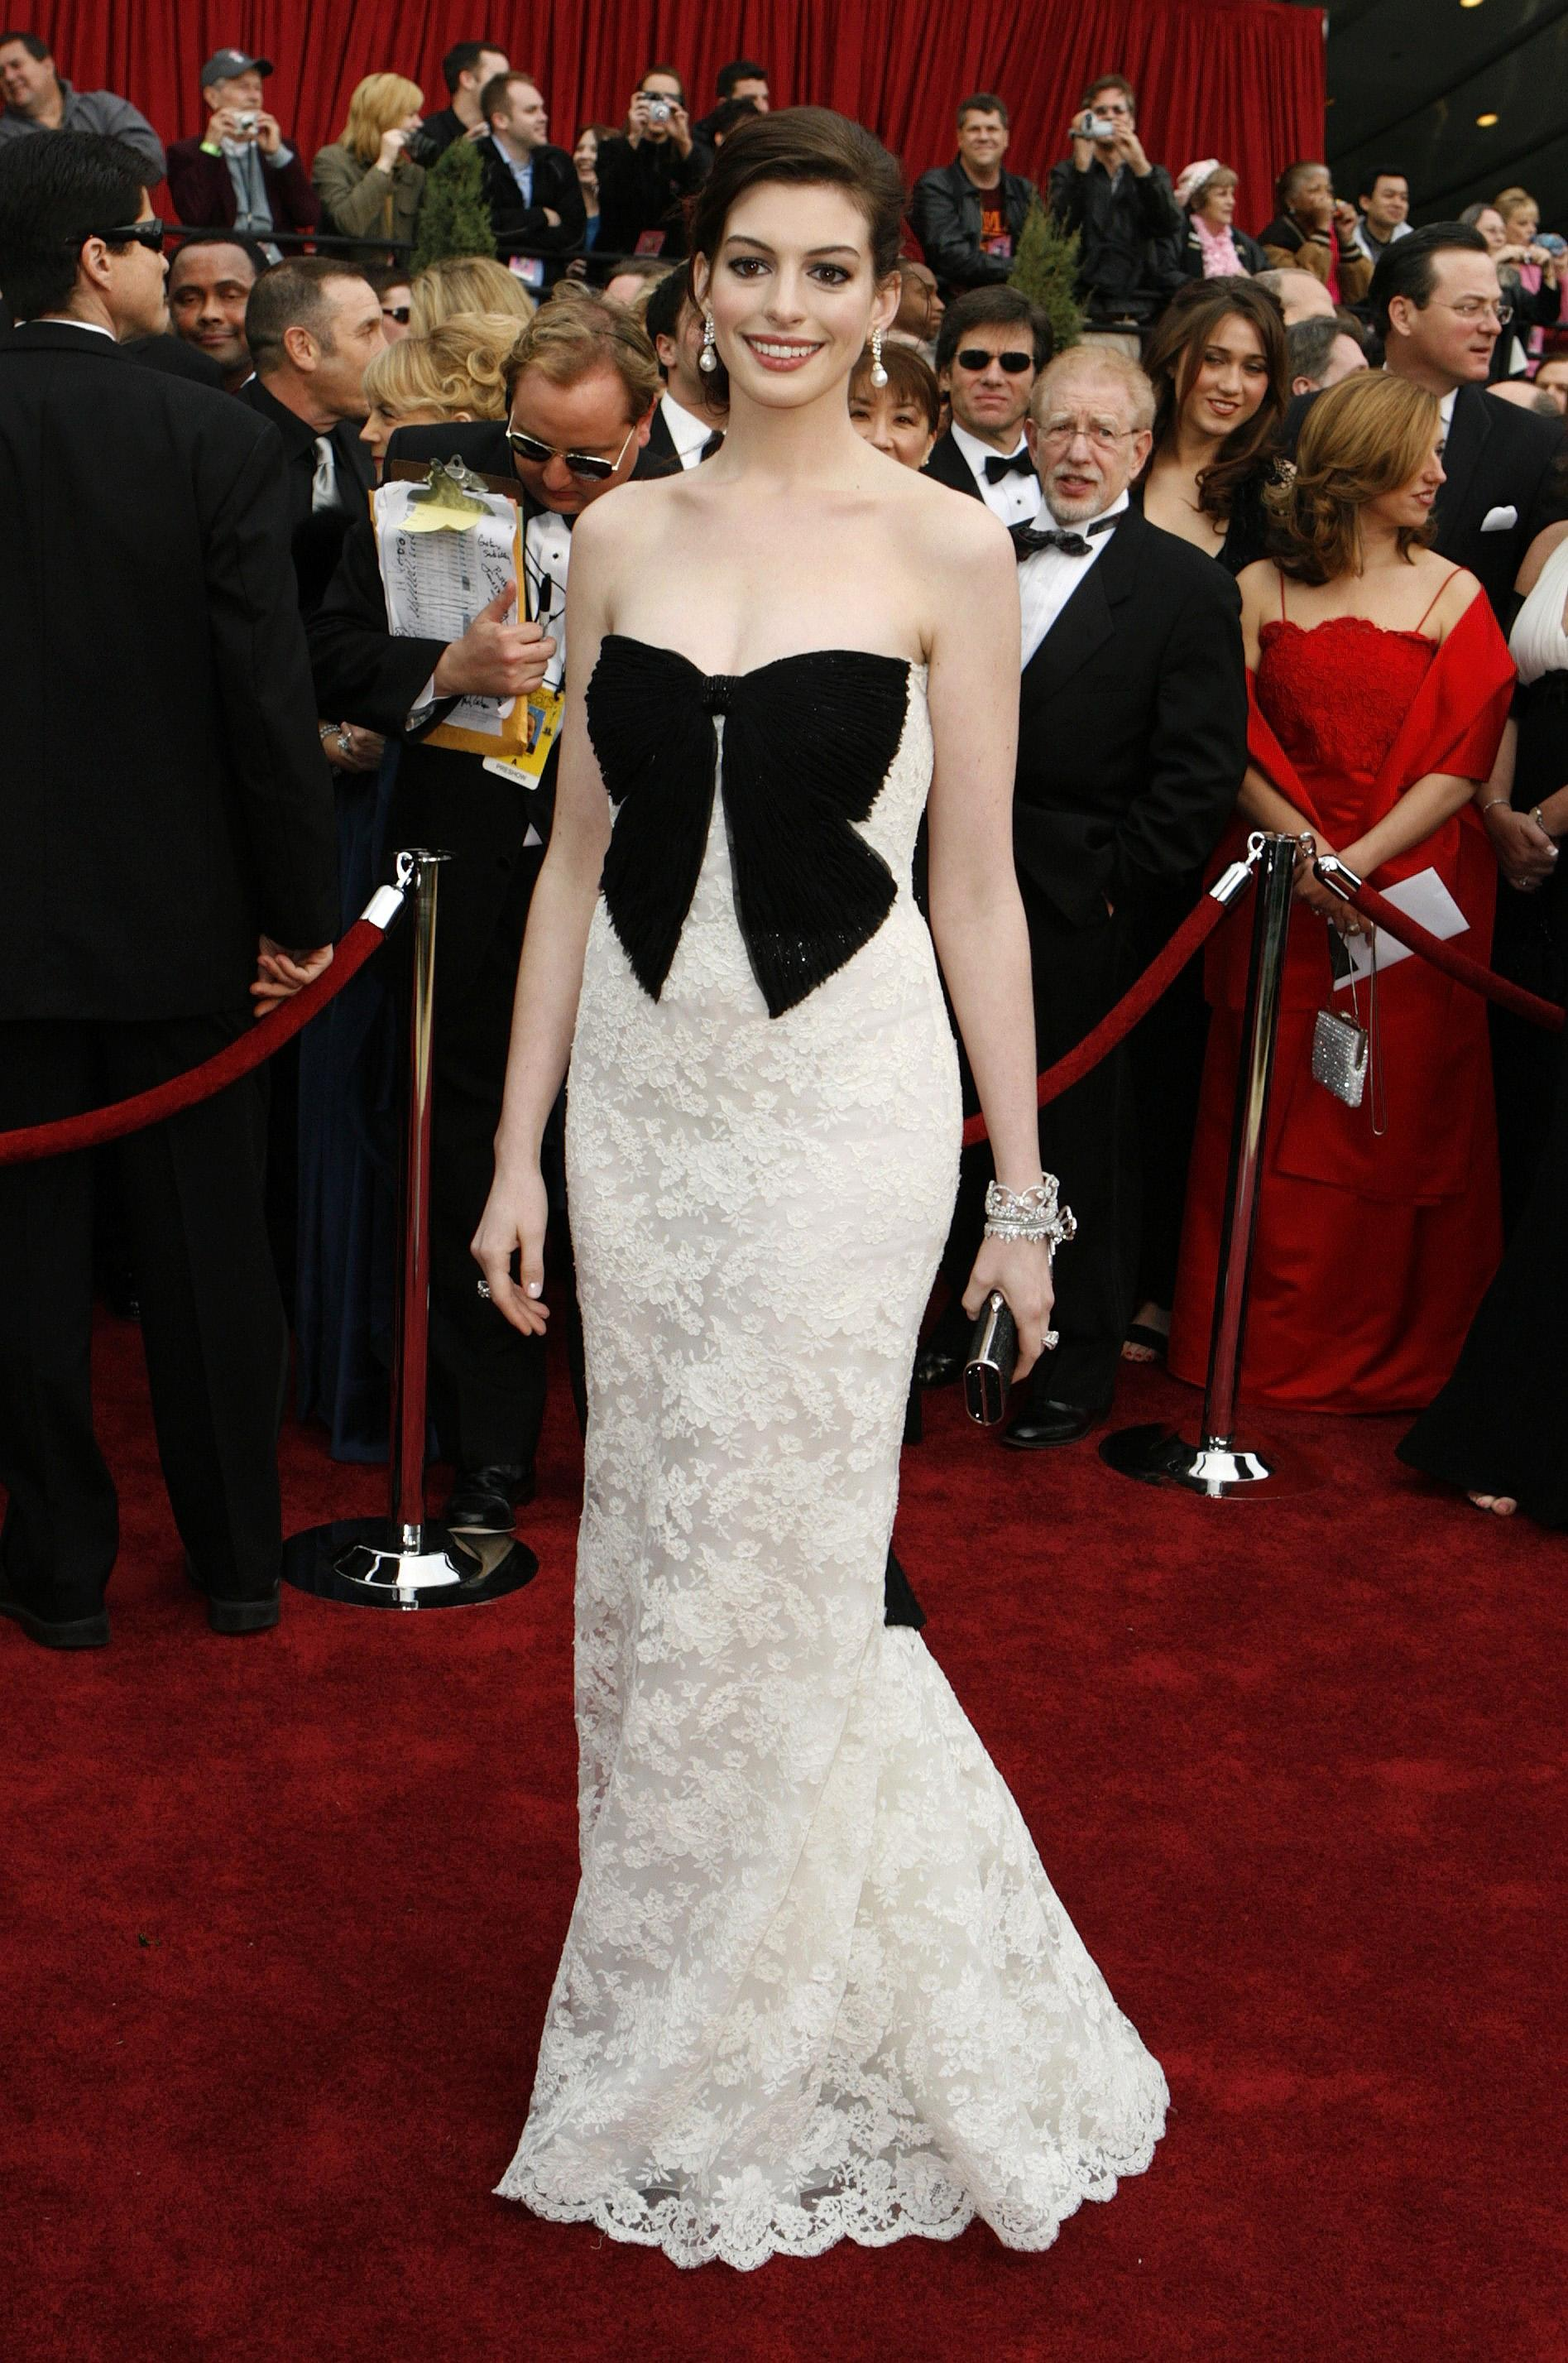 oscars 2013 red carpet fashions best and worst dressed on